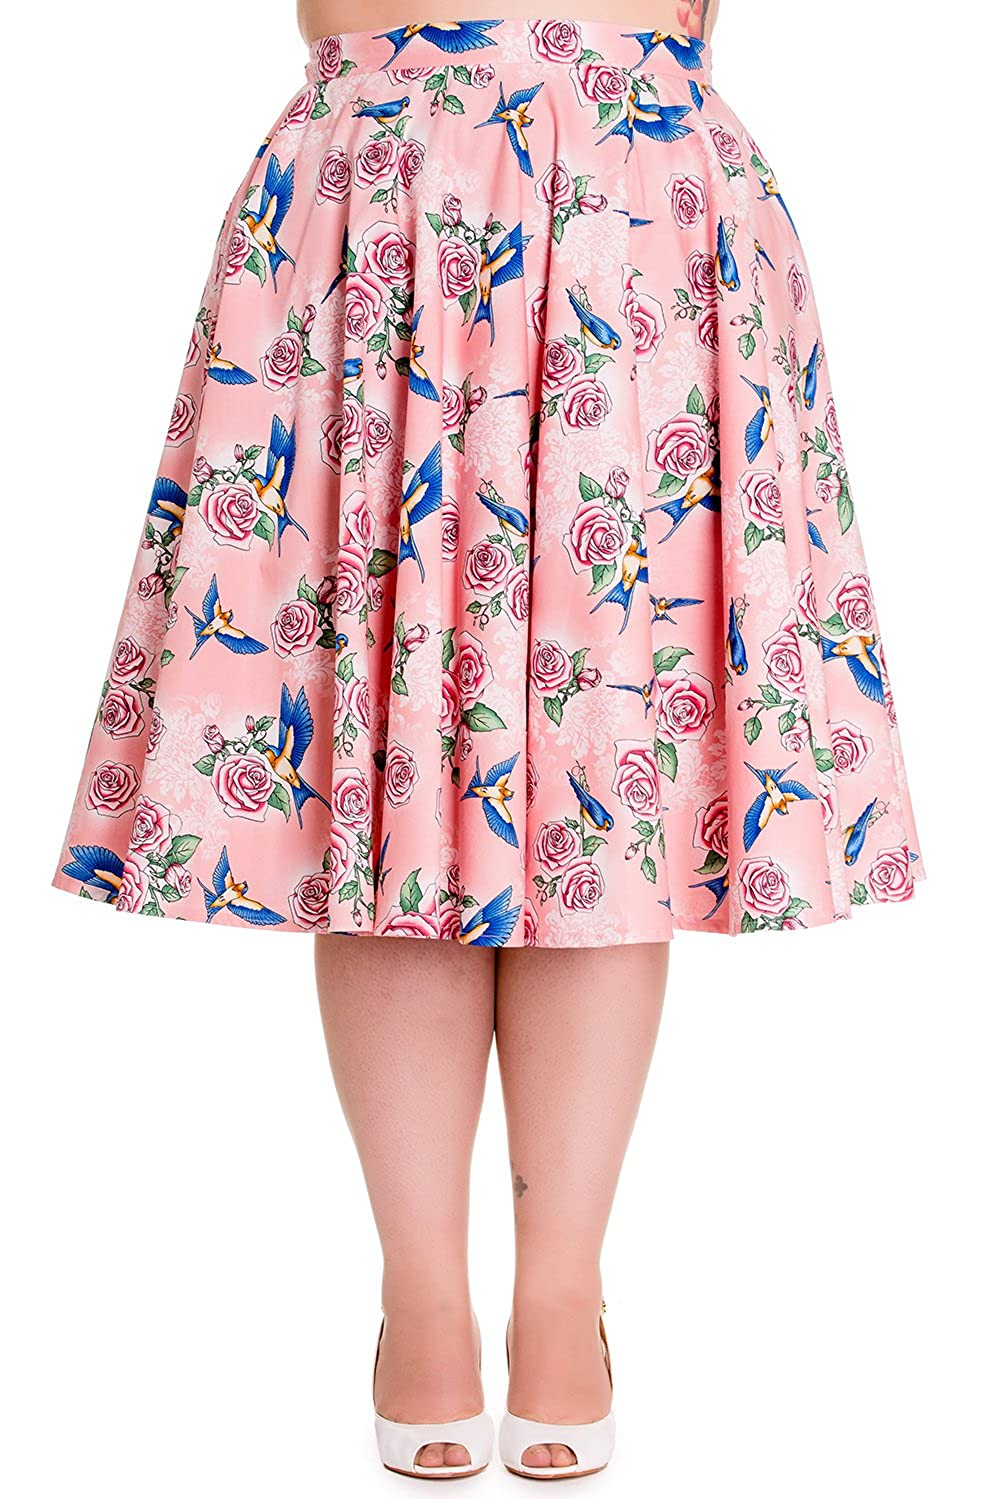 Hell Bunny Plus 50's Retro Vintage Blue Birds and Pink Roses Flare Circle Skirt Pink) HB-5323PLUS